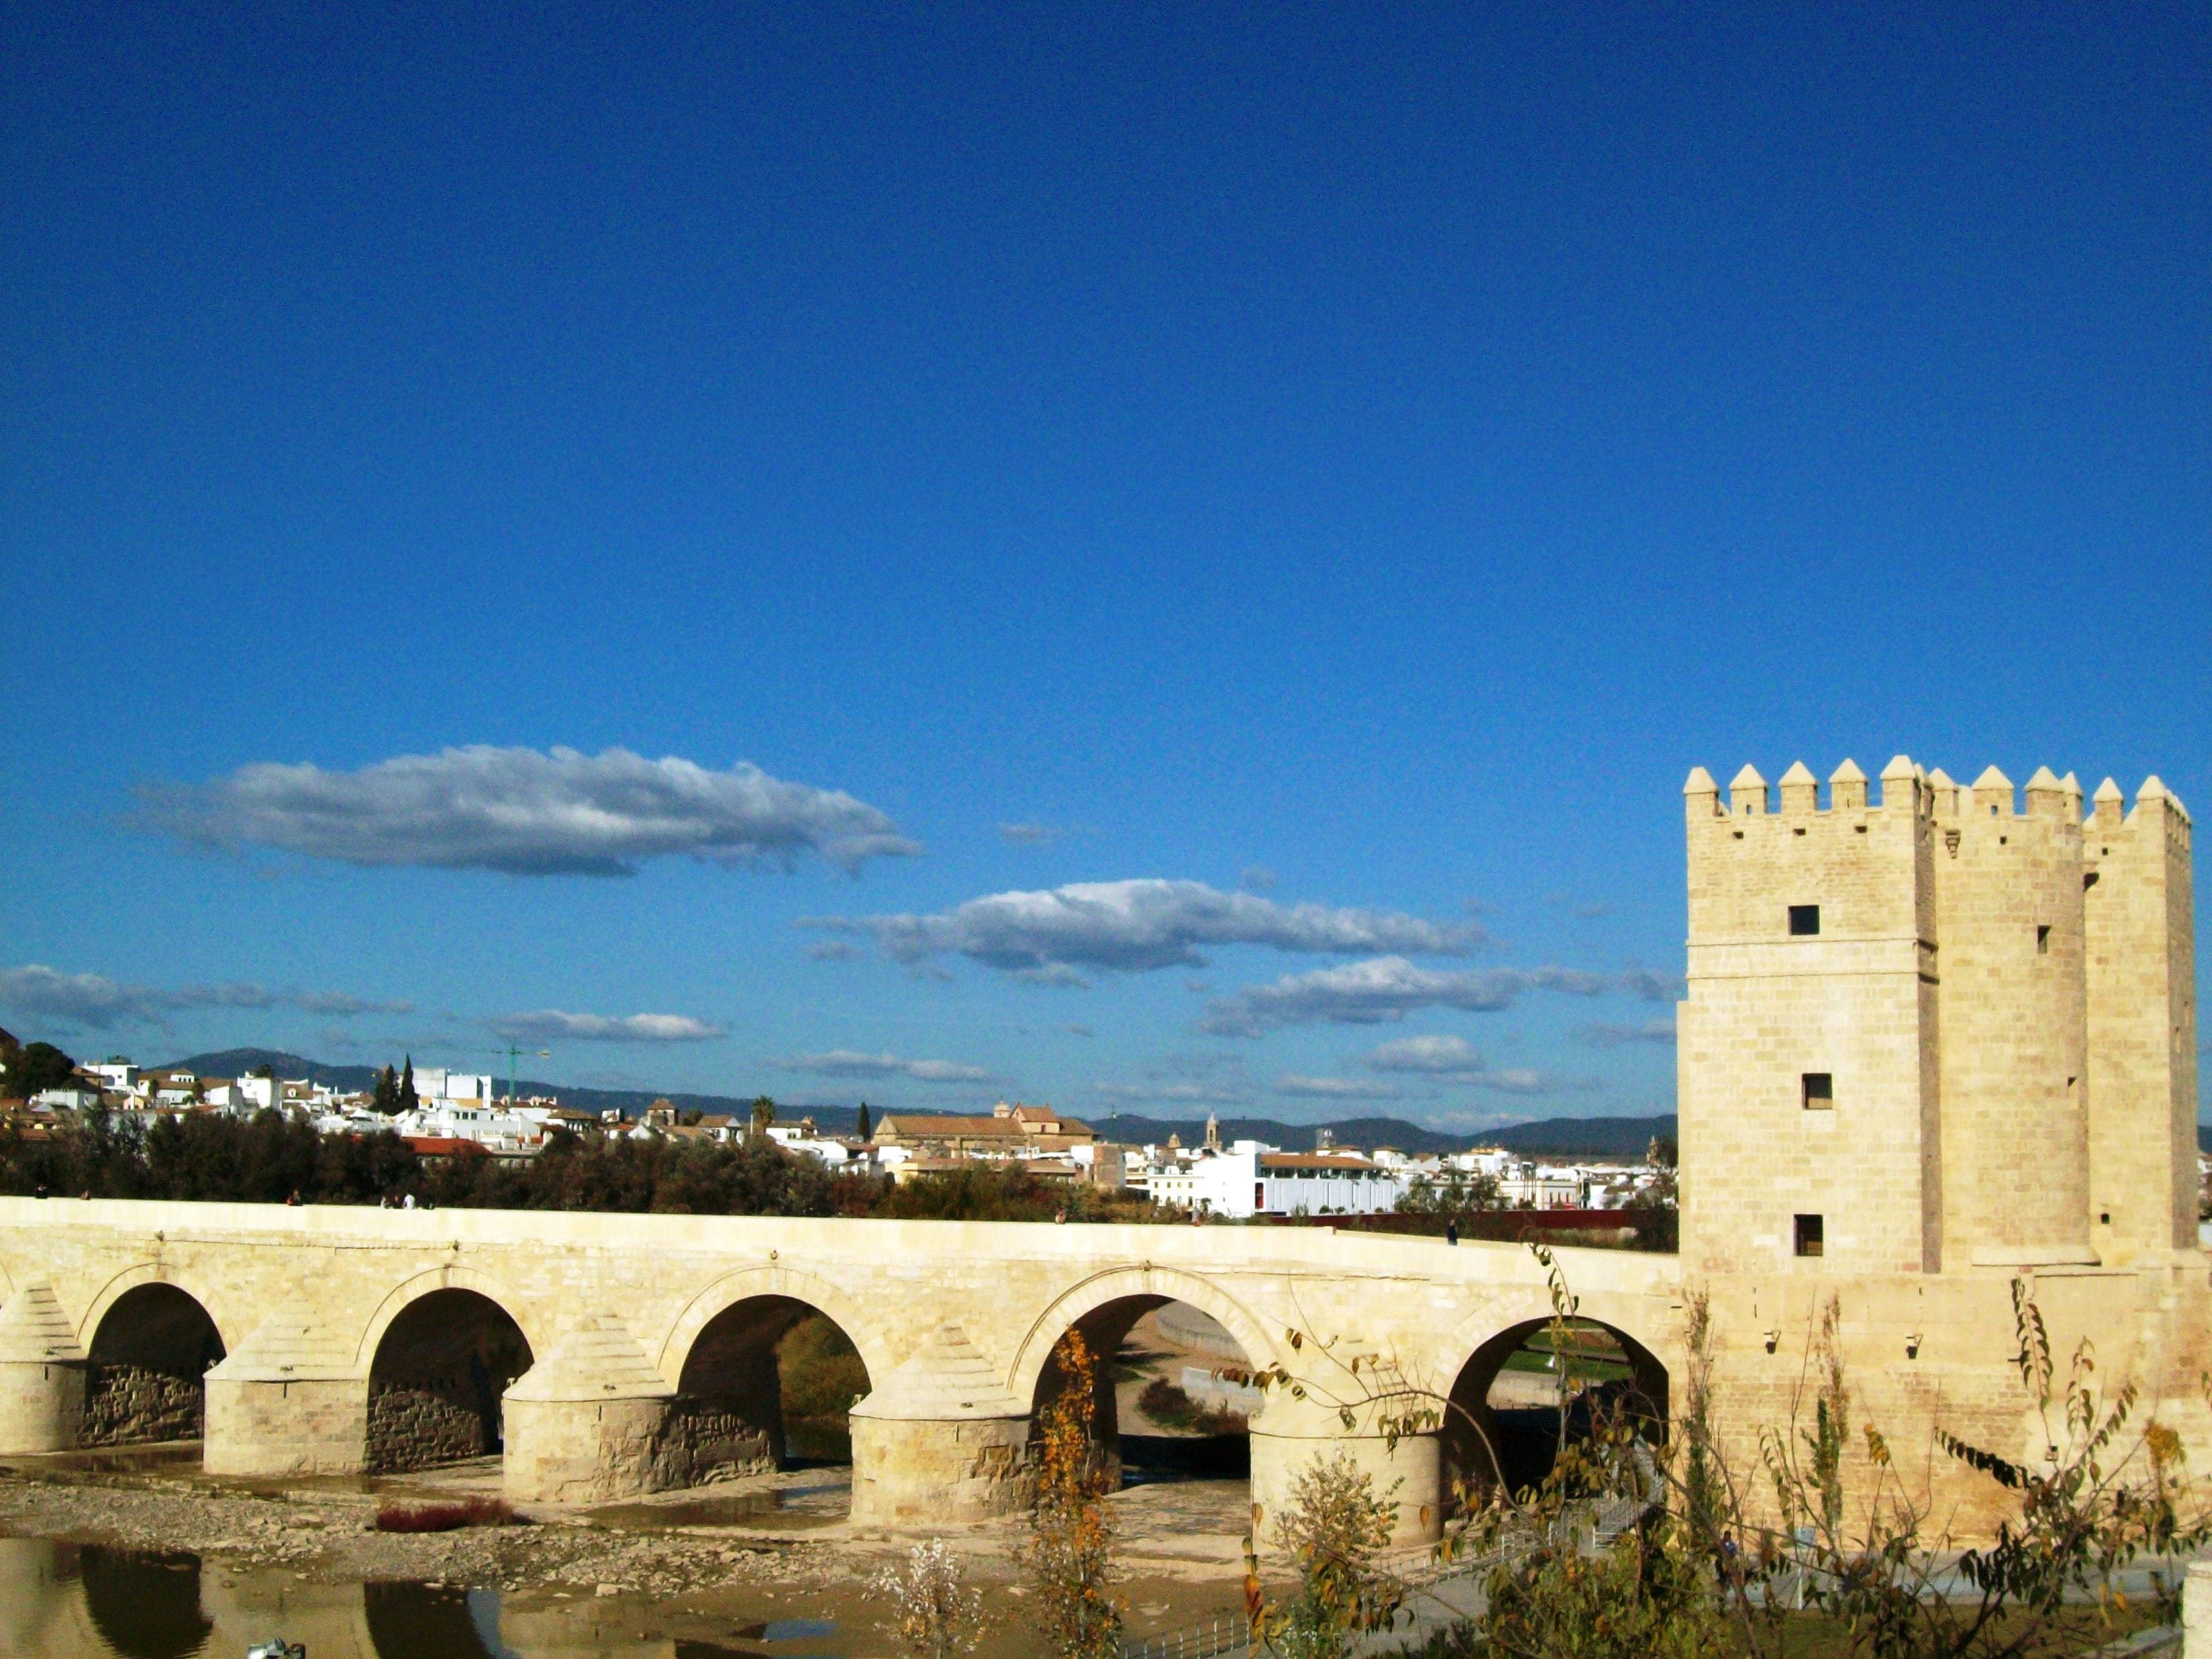 Ancient Roman Architecture in Roman Bridge of Córdoba